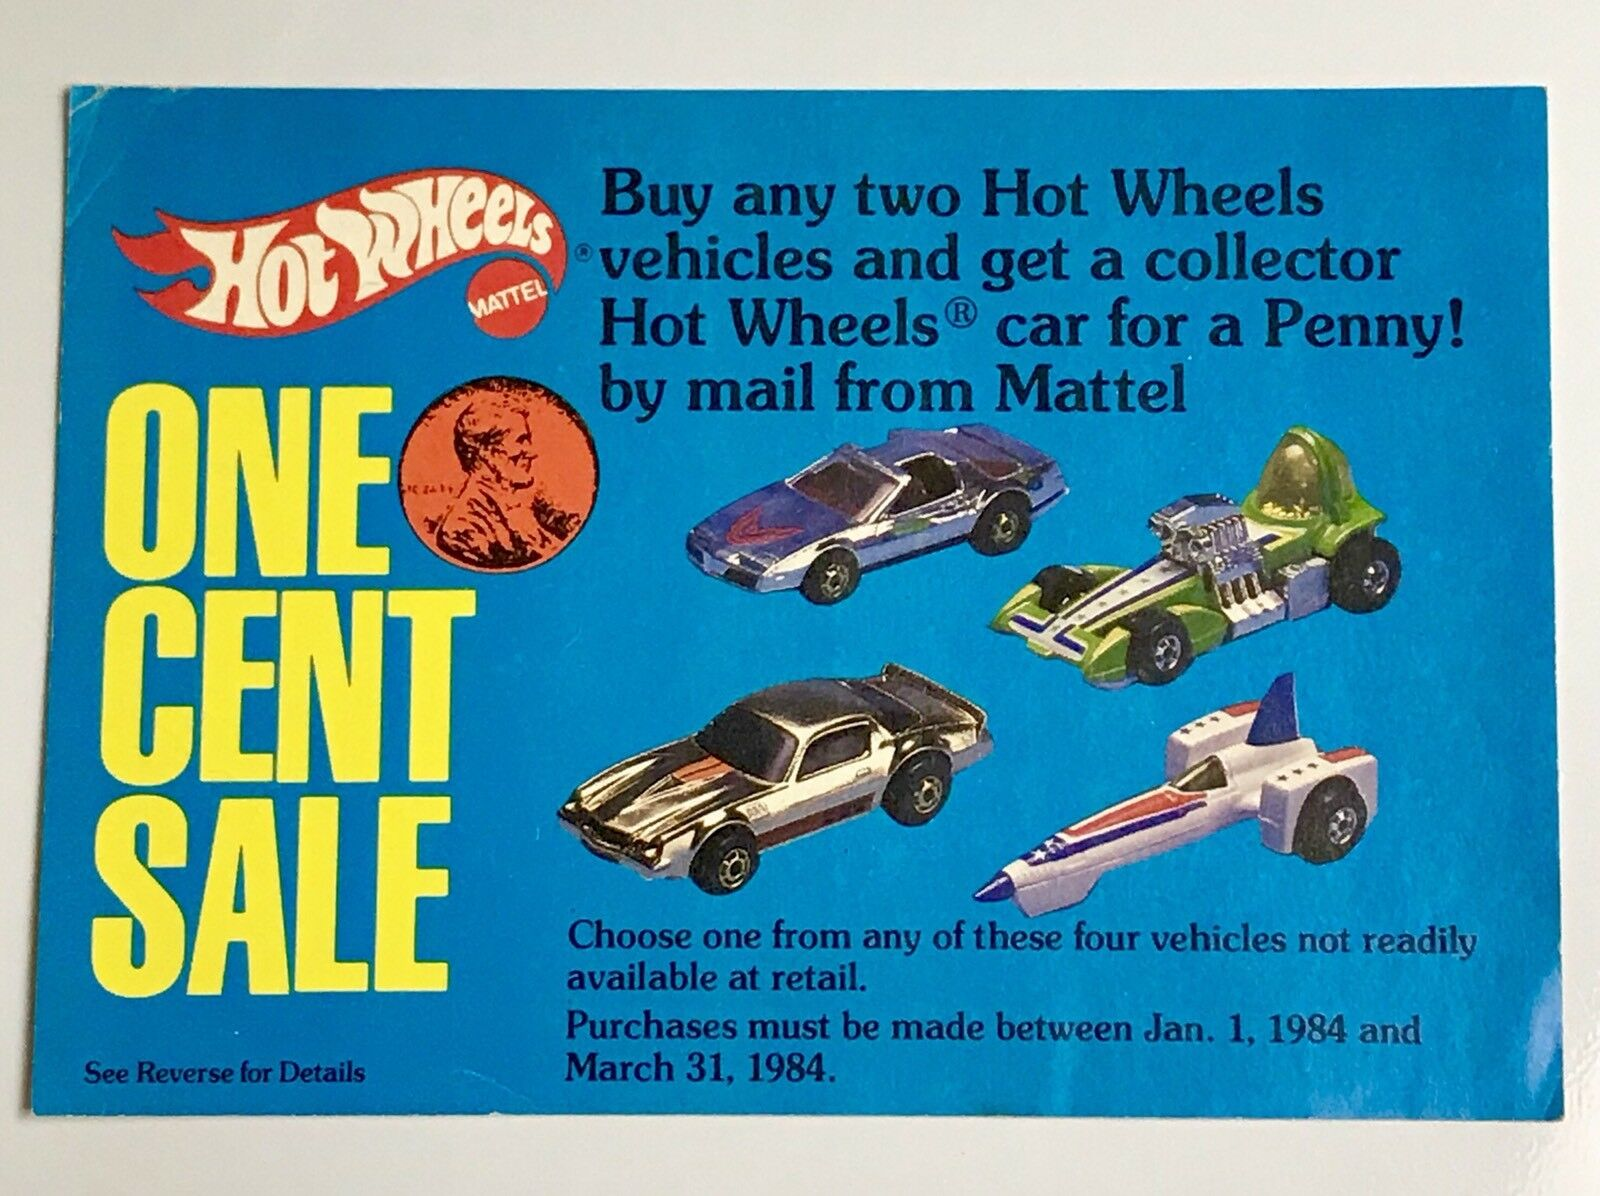 Hot Wheels Wheels Wheels Vintage One Cent Sale Offer 1984 Mail In Order Paper 8f8810